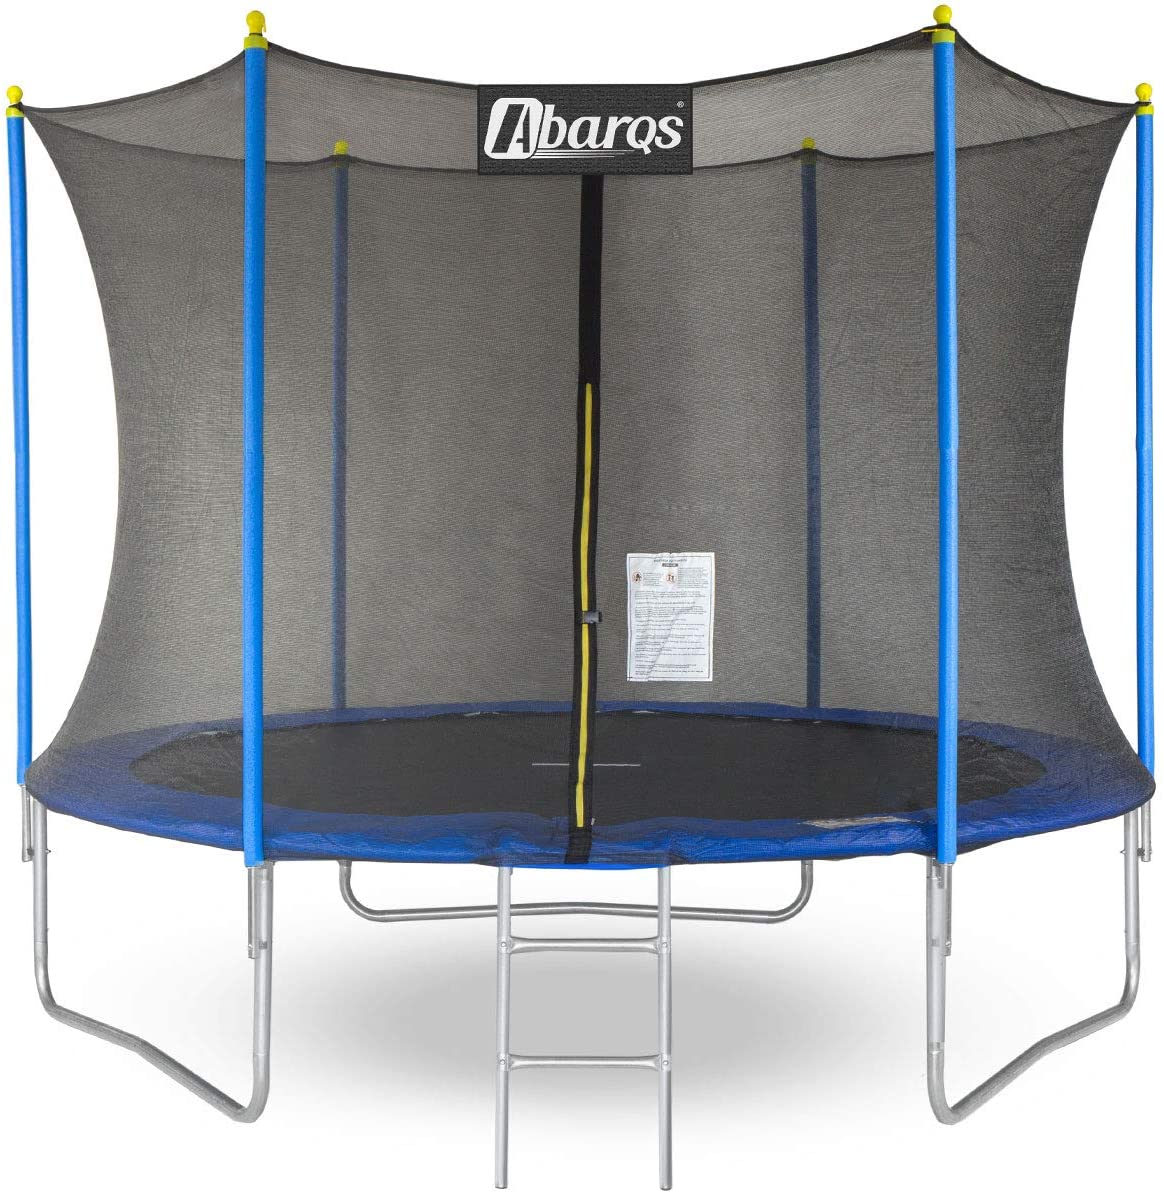 AbarQs Trampoline 14 ft